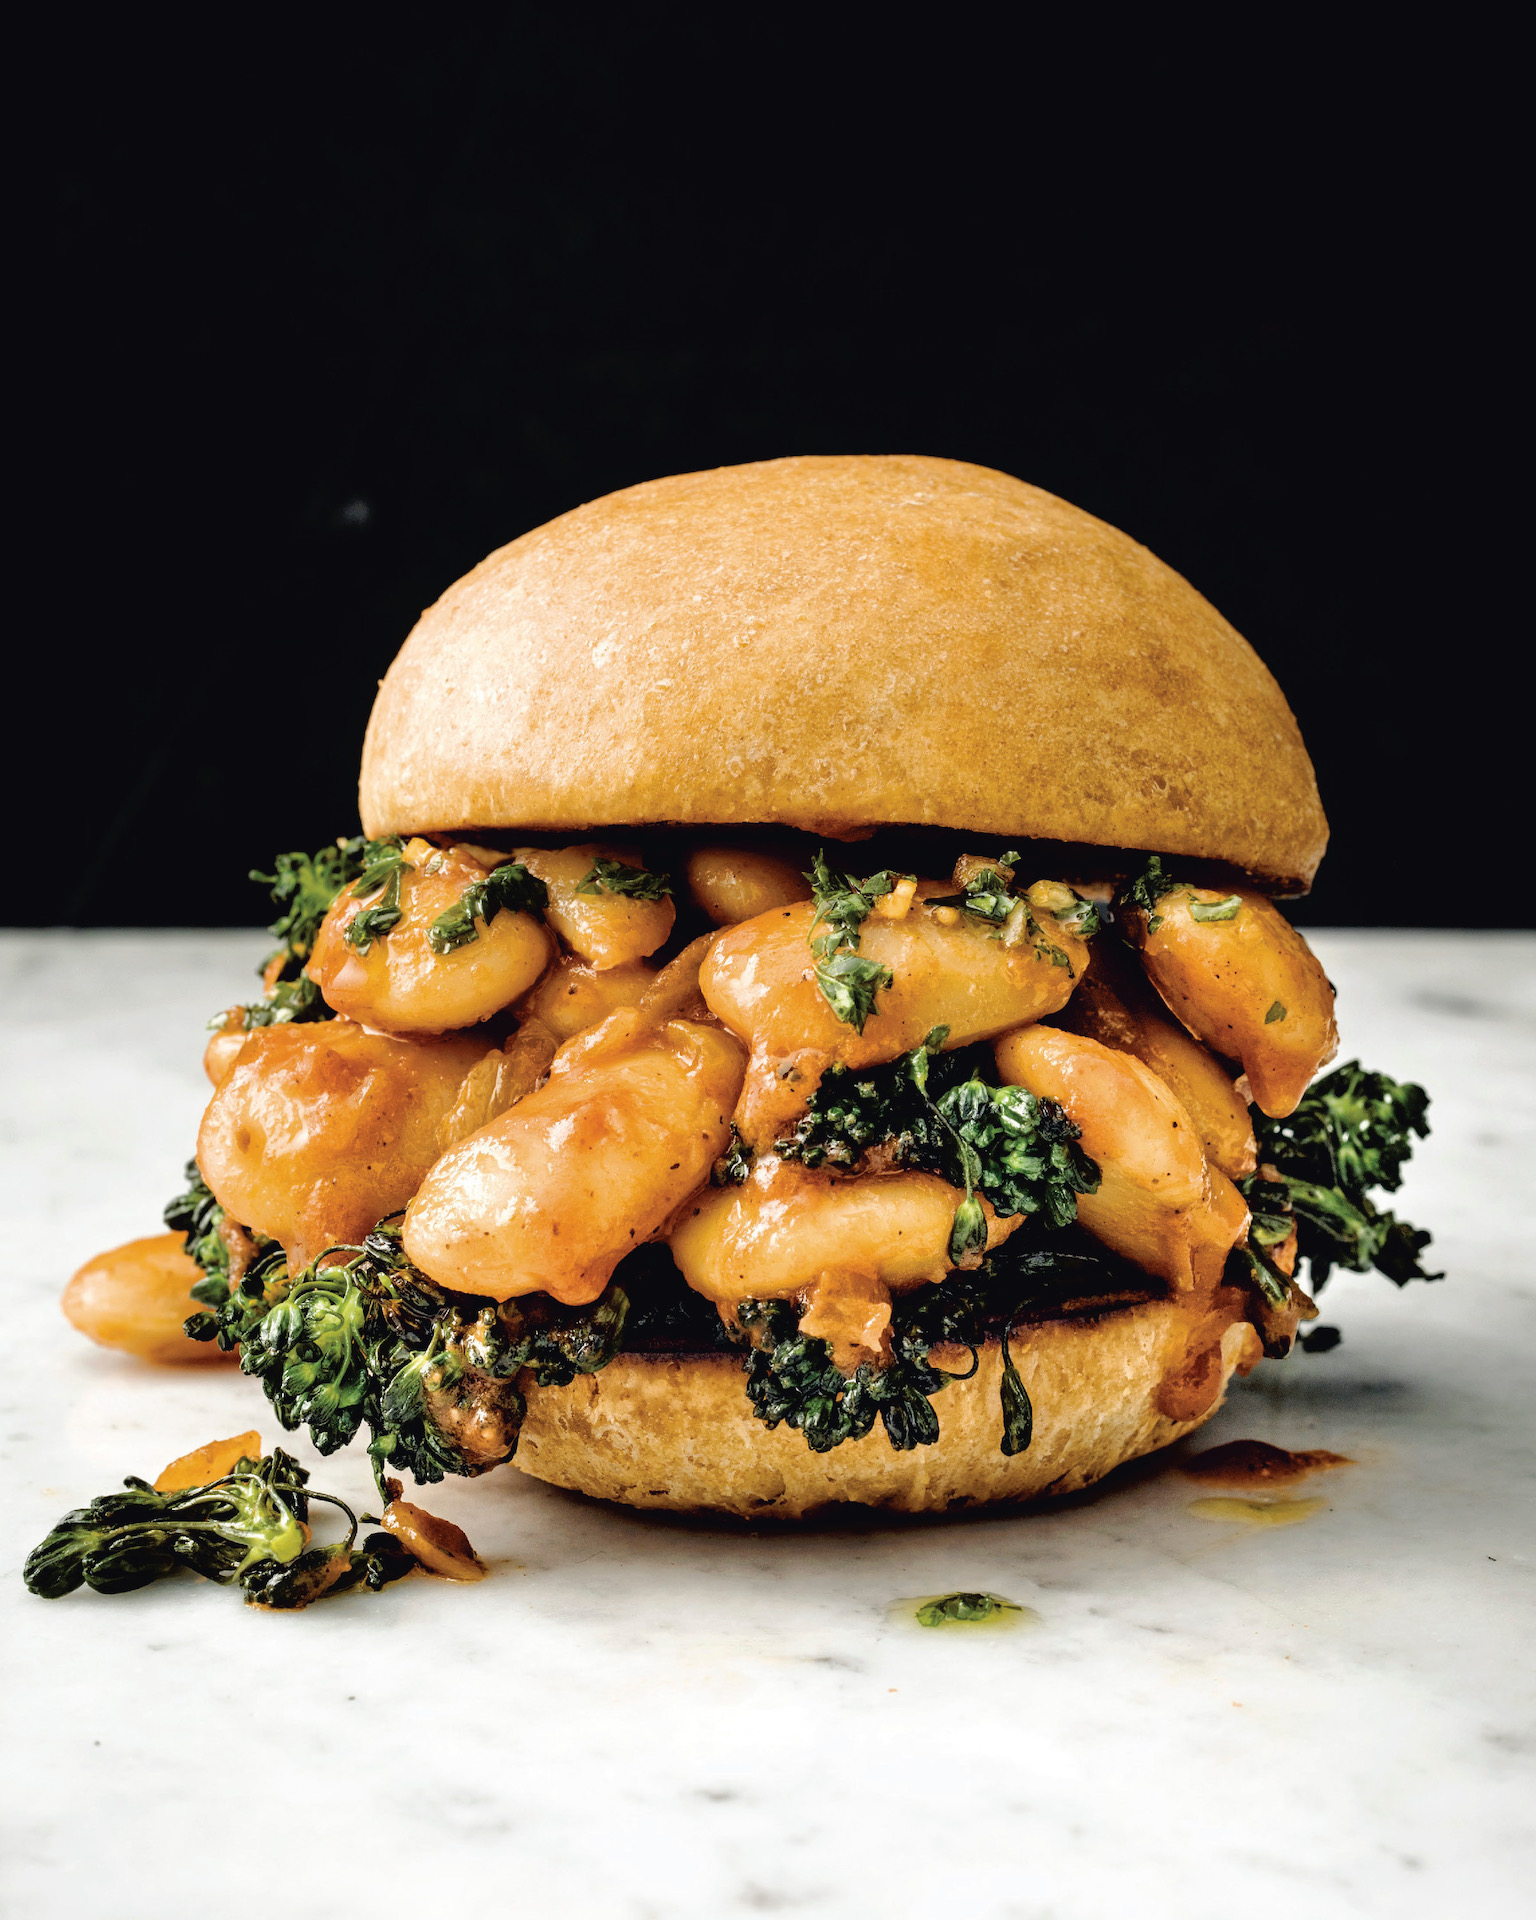 Chef Bryant Terry's big beans, buns and broccoli rabe rabe packs protein and texture between a teff and flour bun.